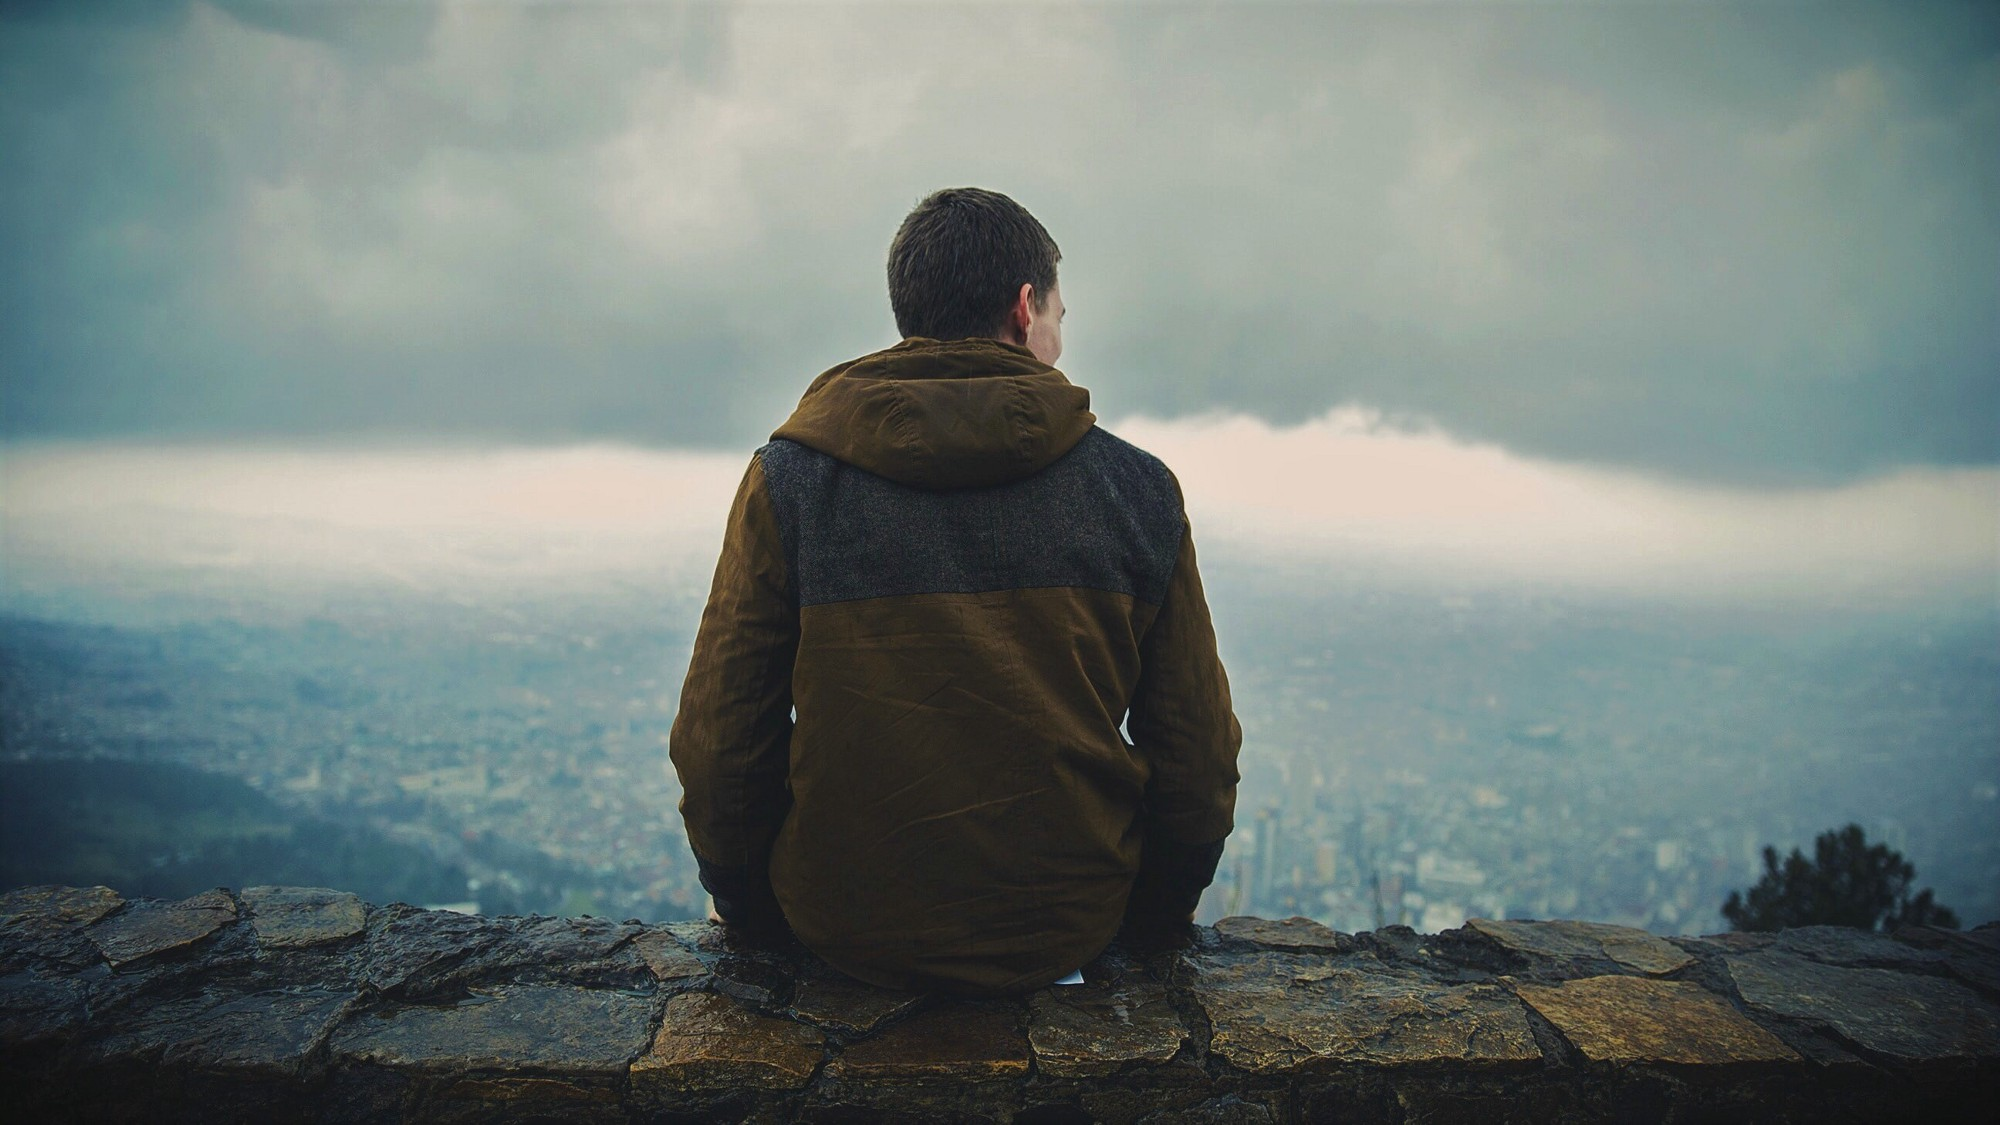 man in hooded jacket sitting on stone wall looking out over landscape and stormy sky